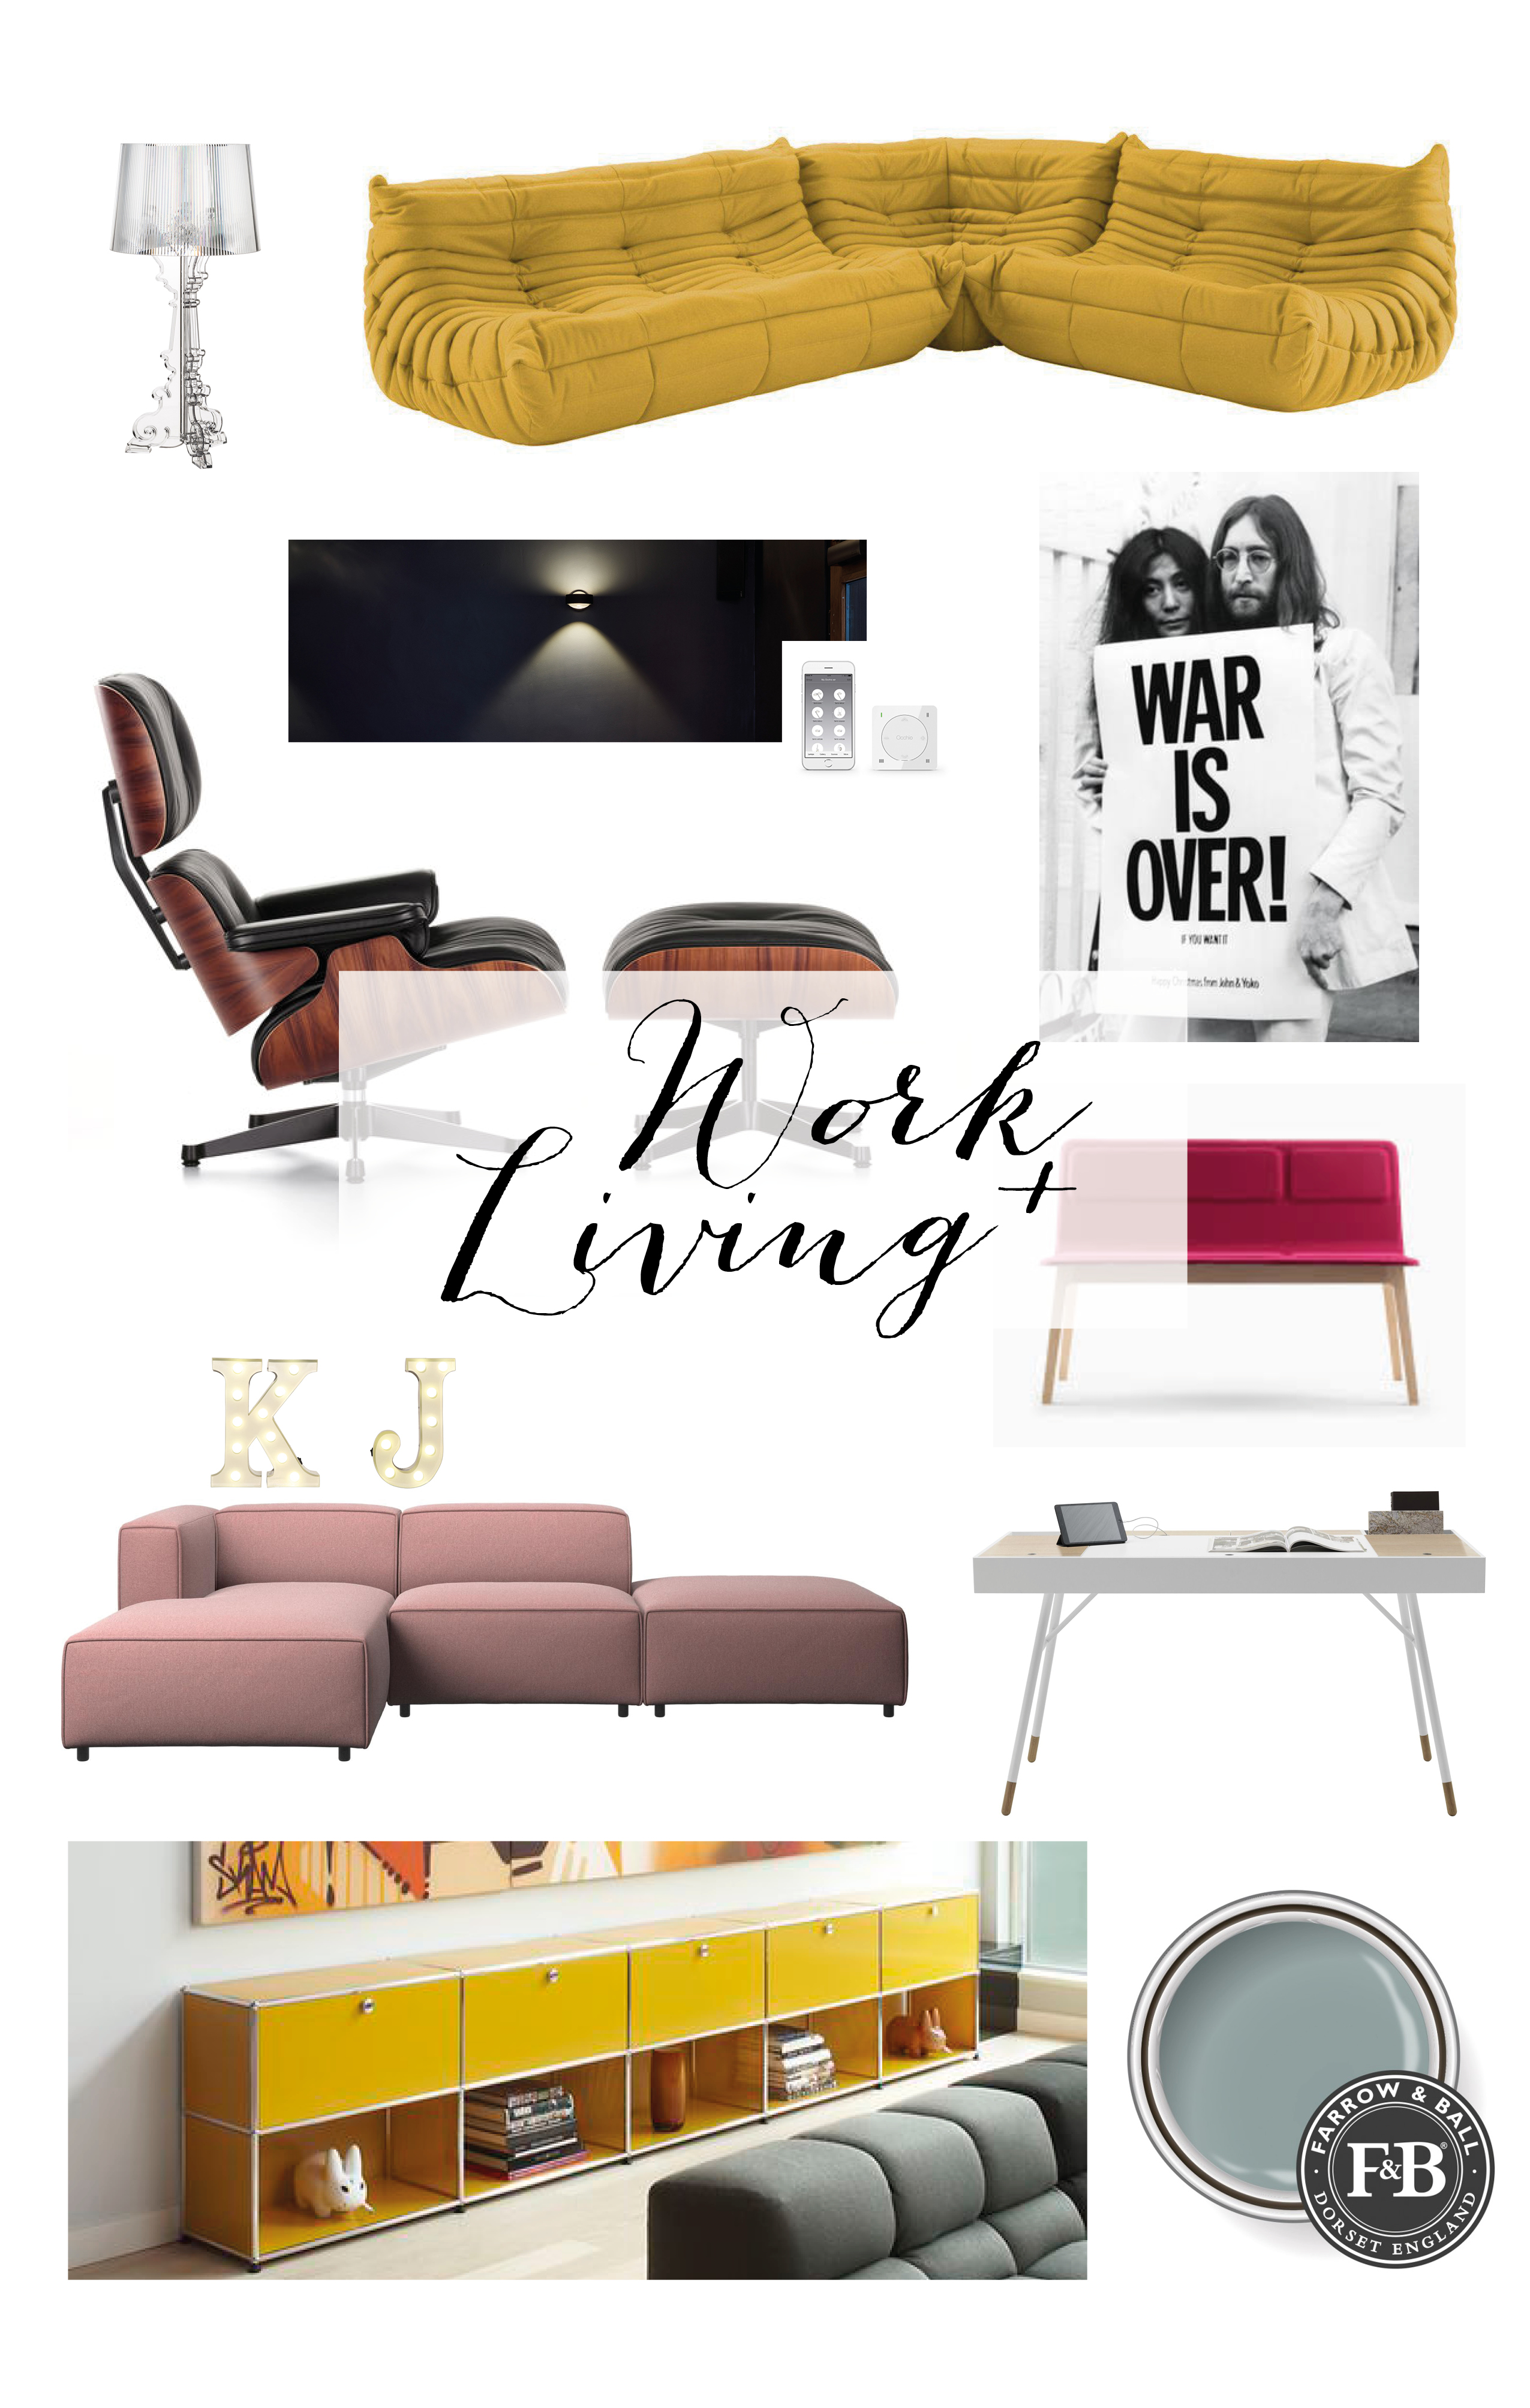 INTERIEUR // WORK & LIVING INSPIRATION (ANZEIGE / ADVERTISEMENT)